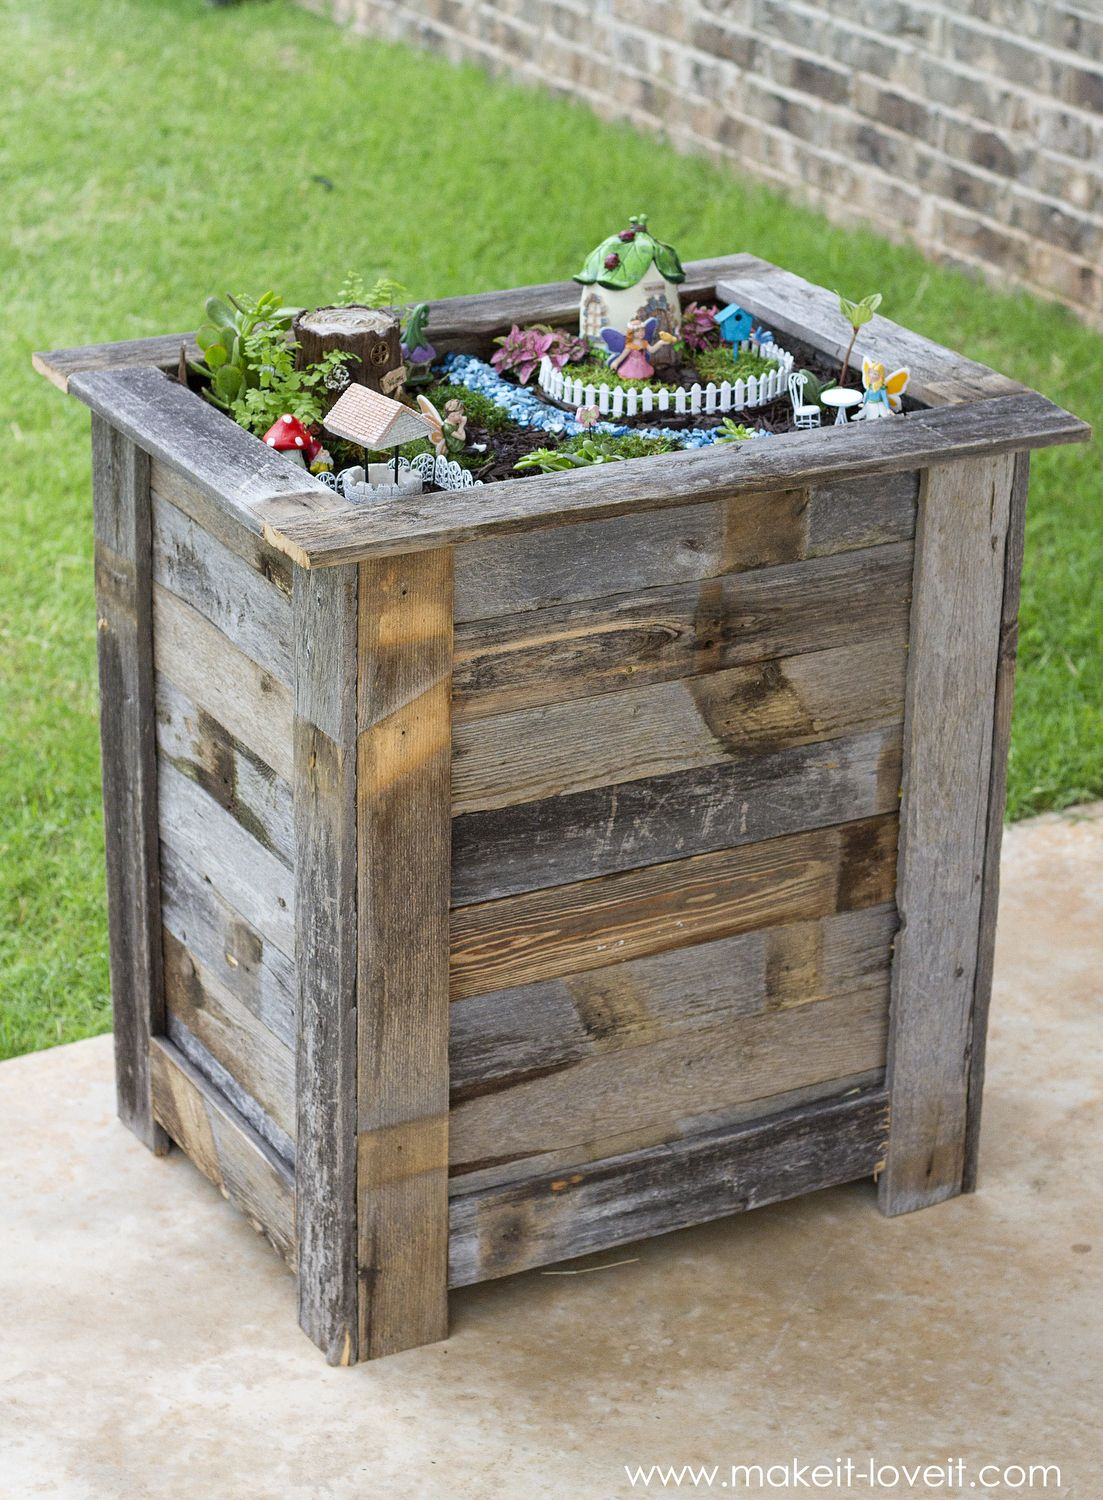 Diy Reclaimed Wood Planter Box For An Upright Fairy Garden Www Makeit Loveit